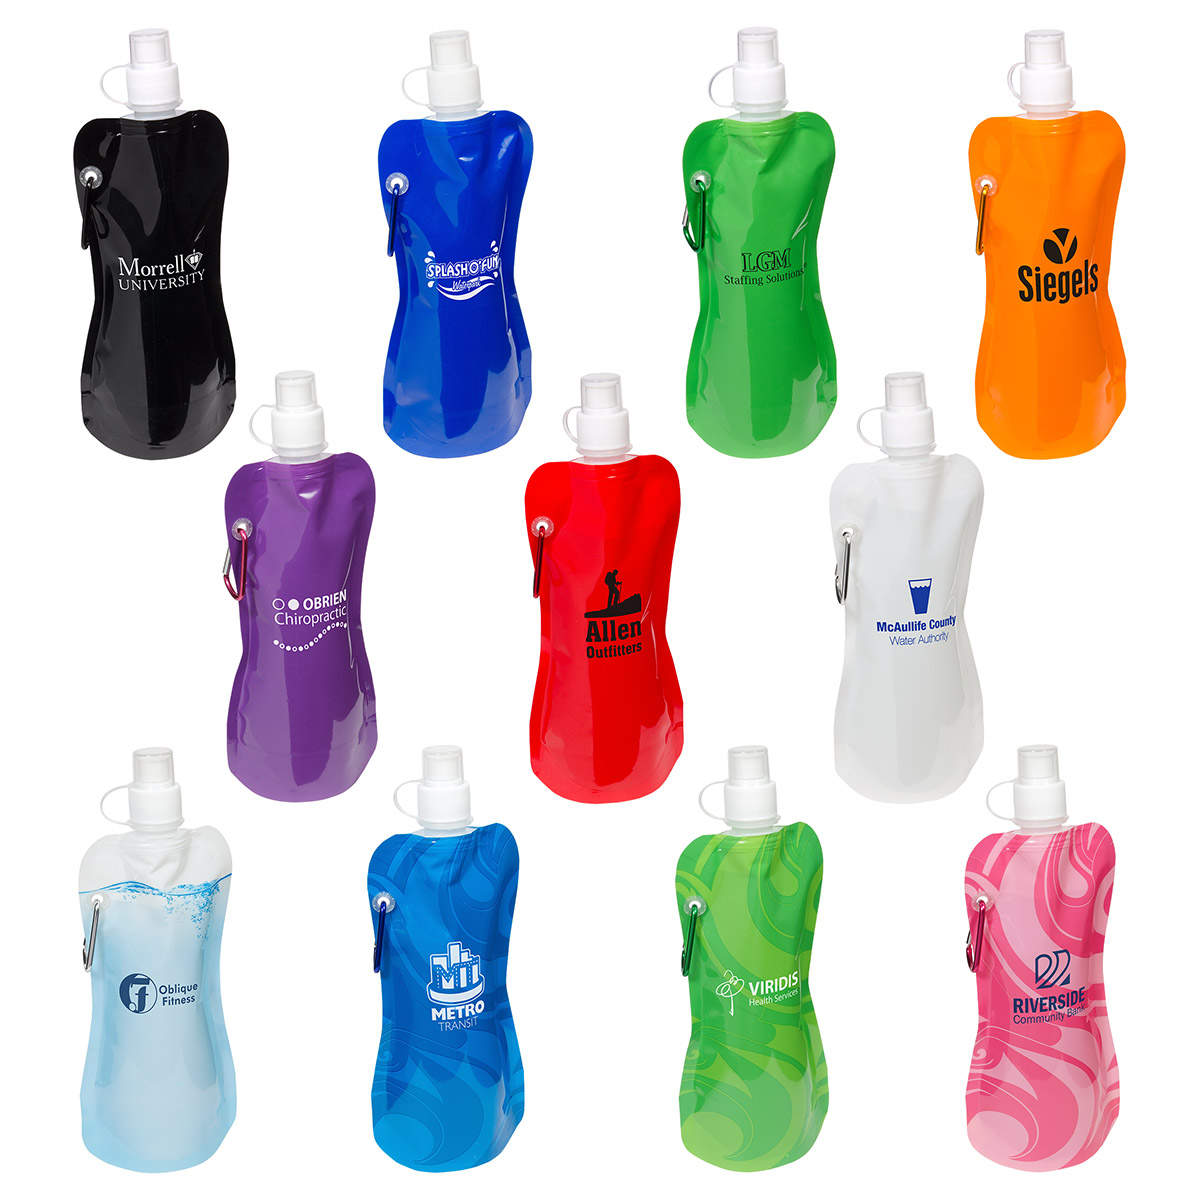 16 Oz. Flex Water Bottle w/ Carabiner, WKA-FW13 - 1 Colour Imprint